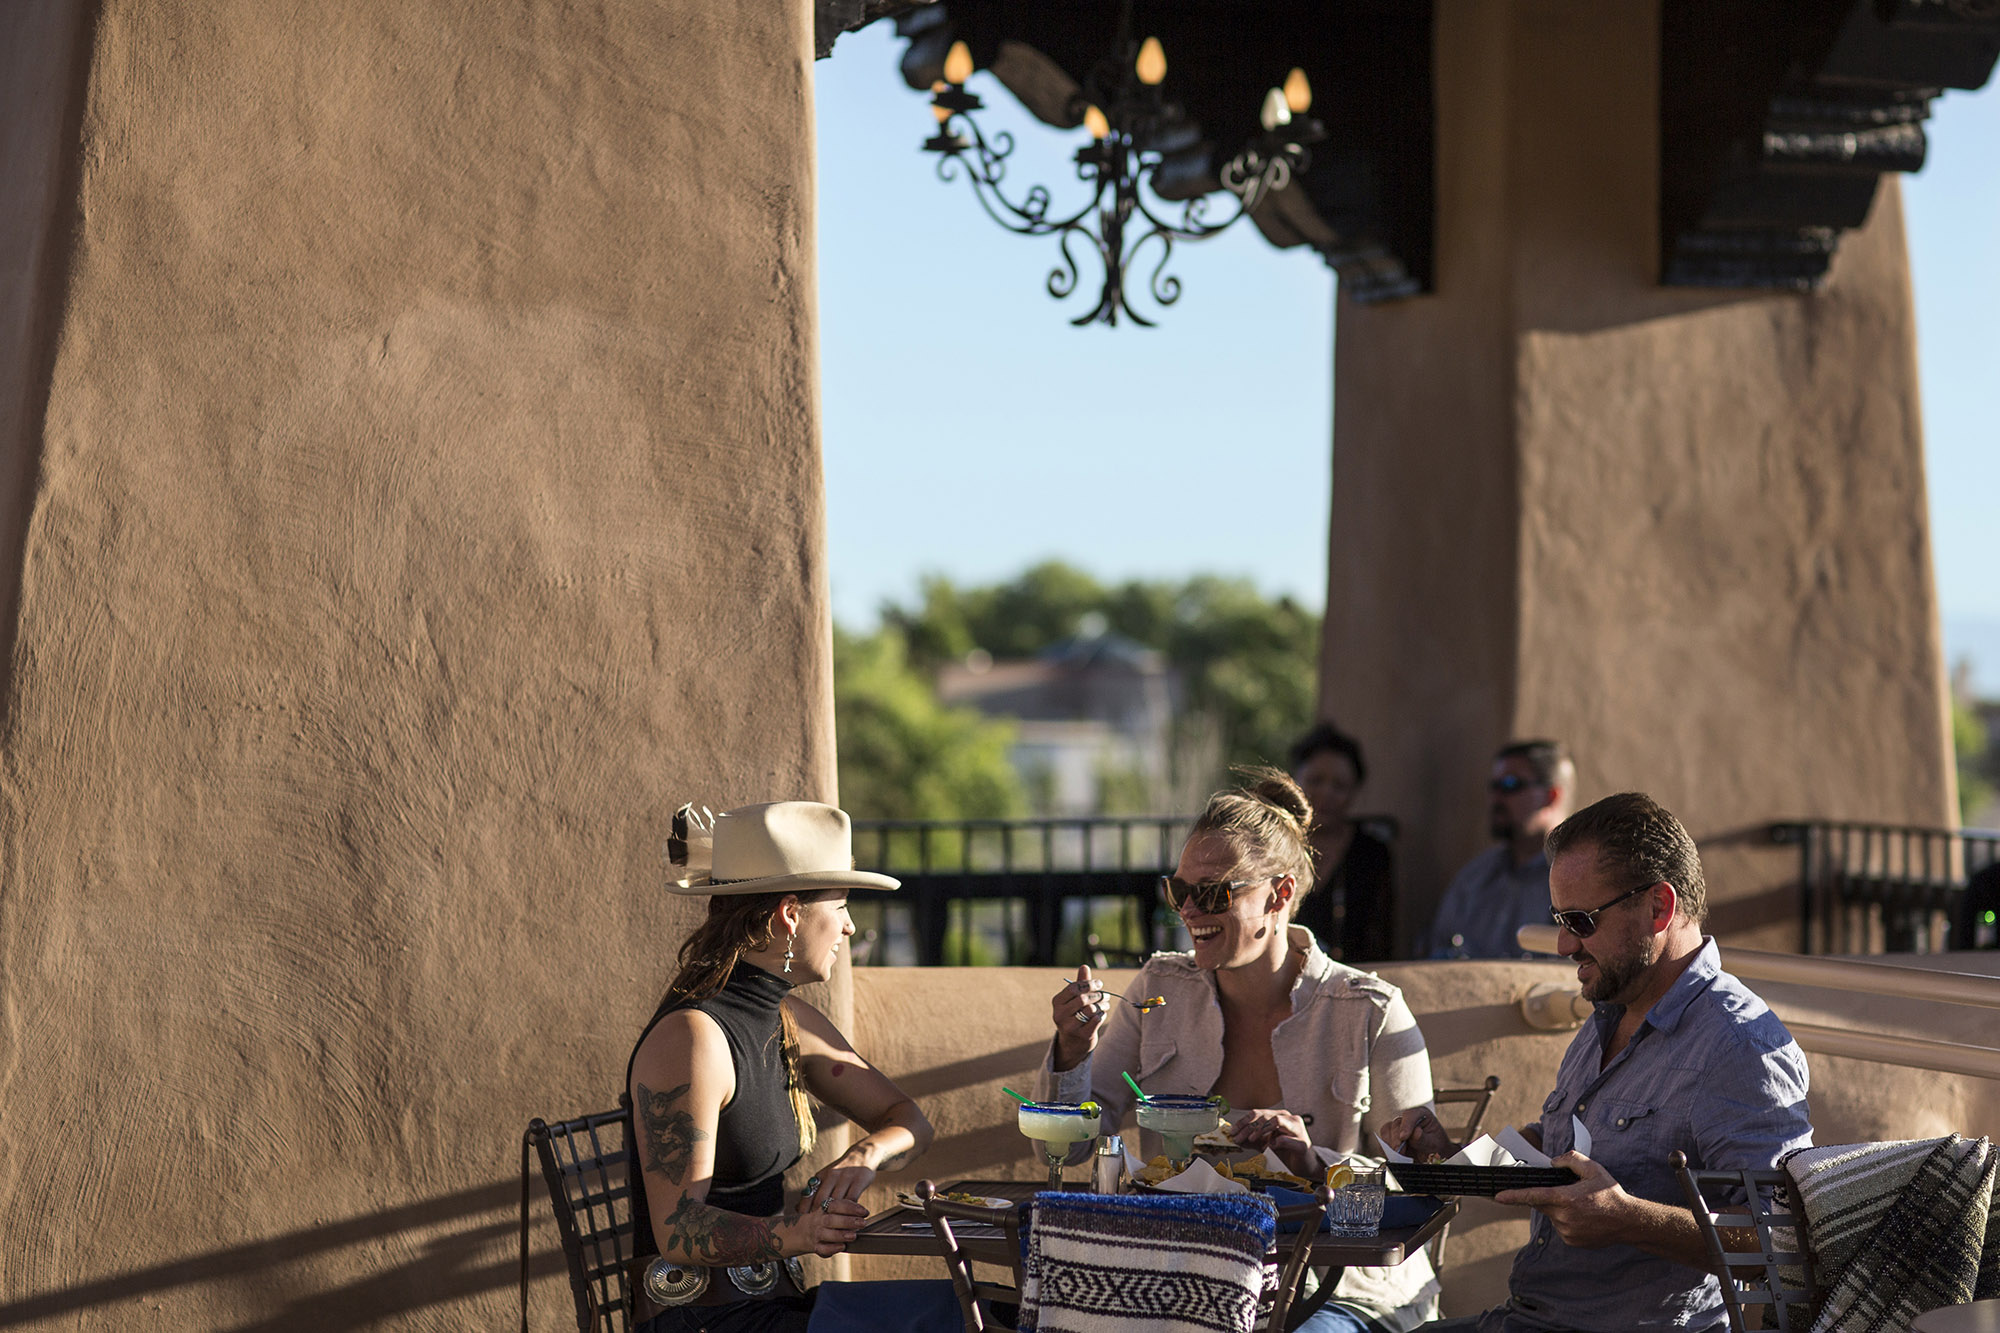 Site Santa Fe >> People Dining at the Bell Tower restaurant in Santa Fe, New Mexico image - Free stock photo ...